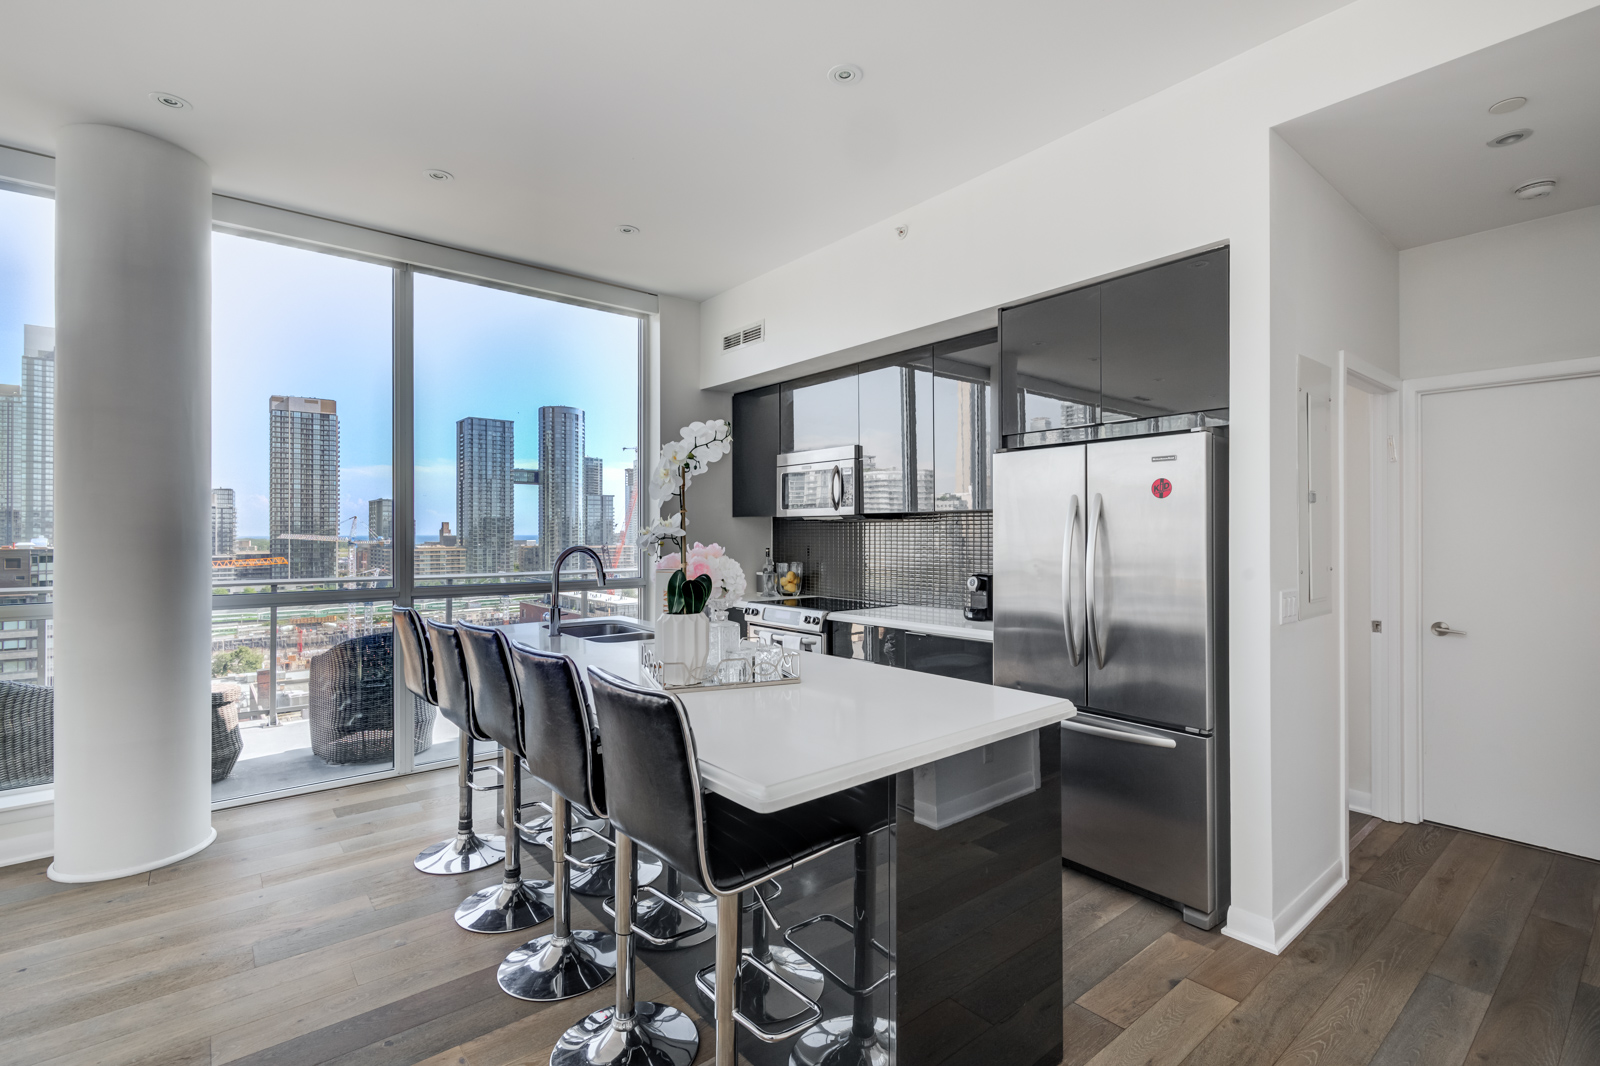 Breakfast bar and kitchen island with stools - Victory Lofts Penthouse Suite in 478 King St W Toronto.